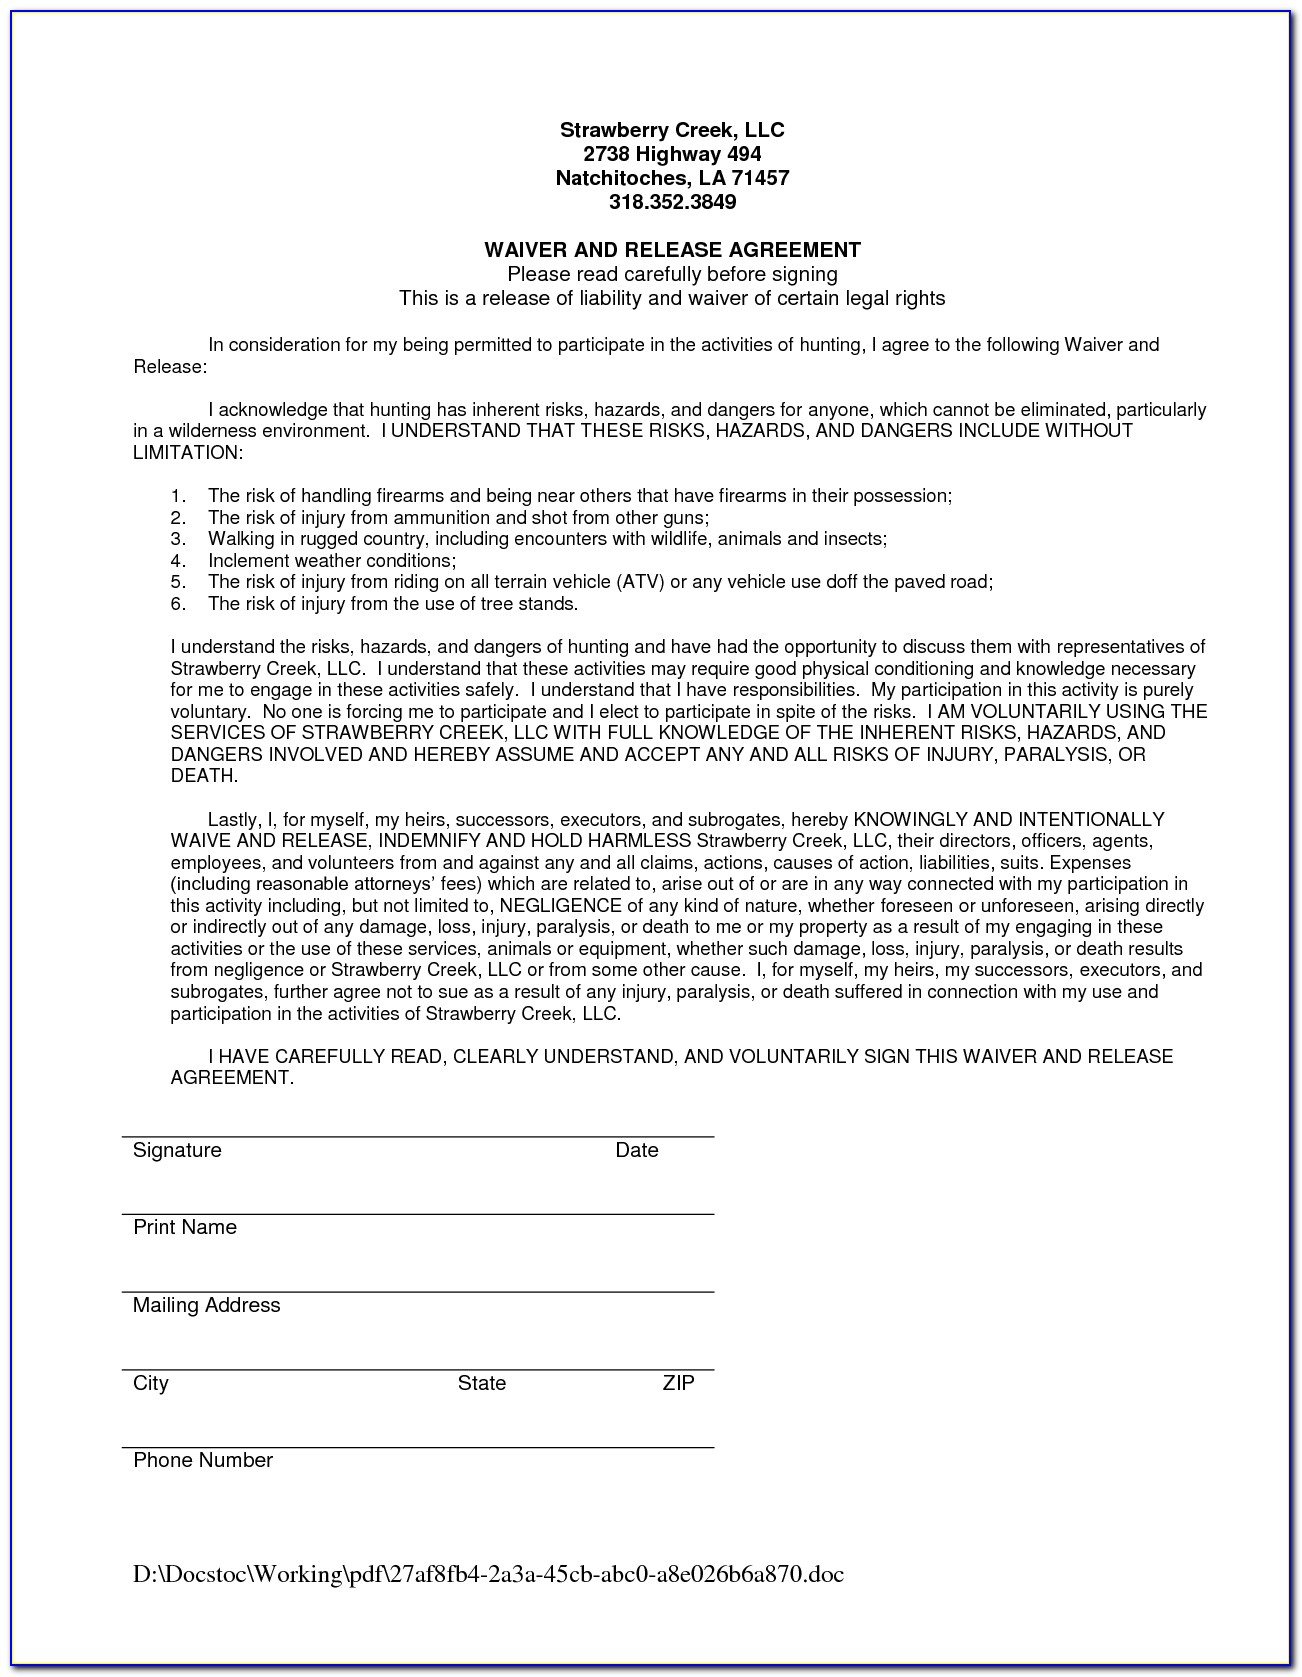 Medicare Advantage Plan Waiver Of Liability Form